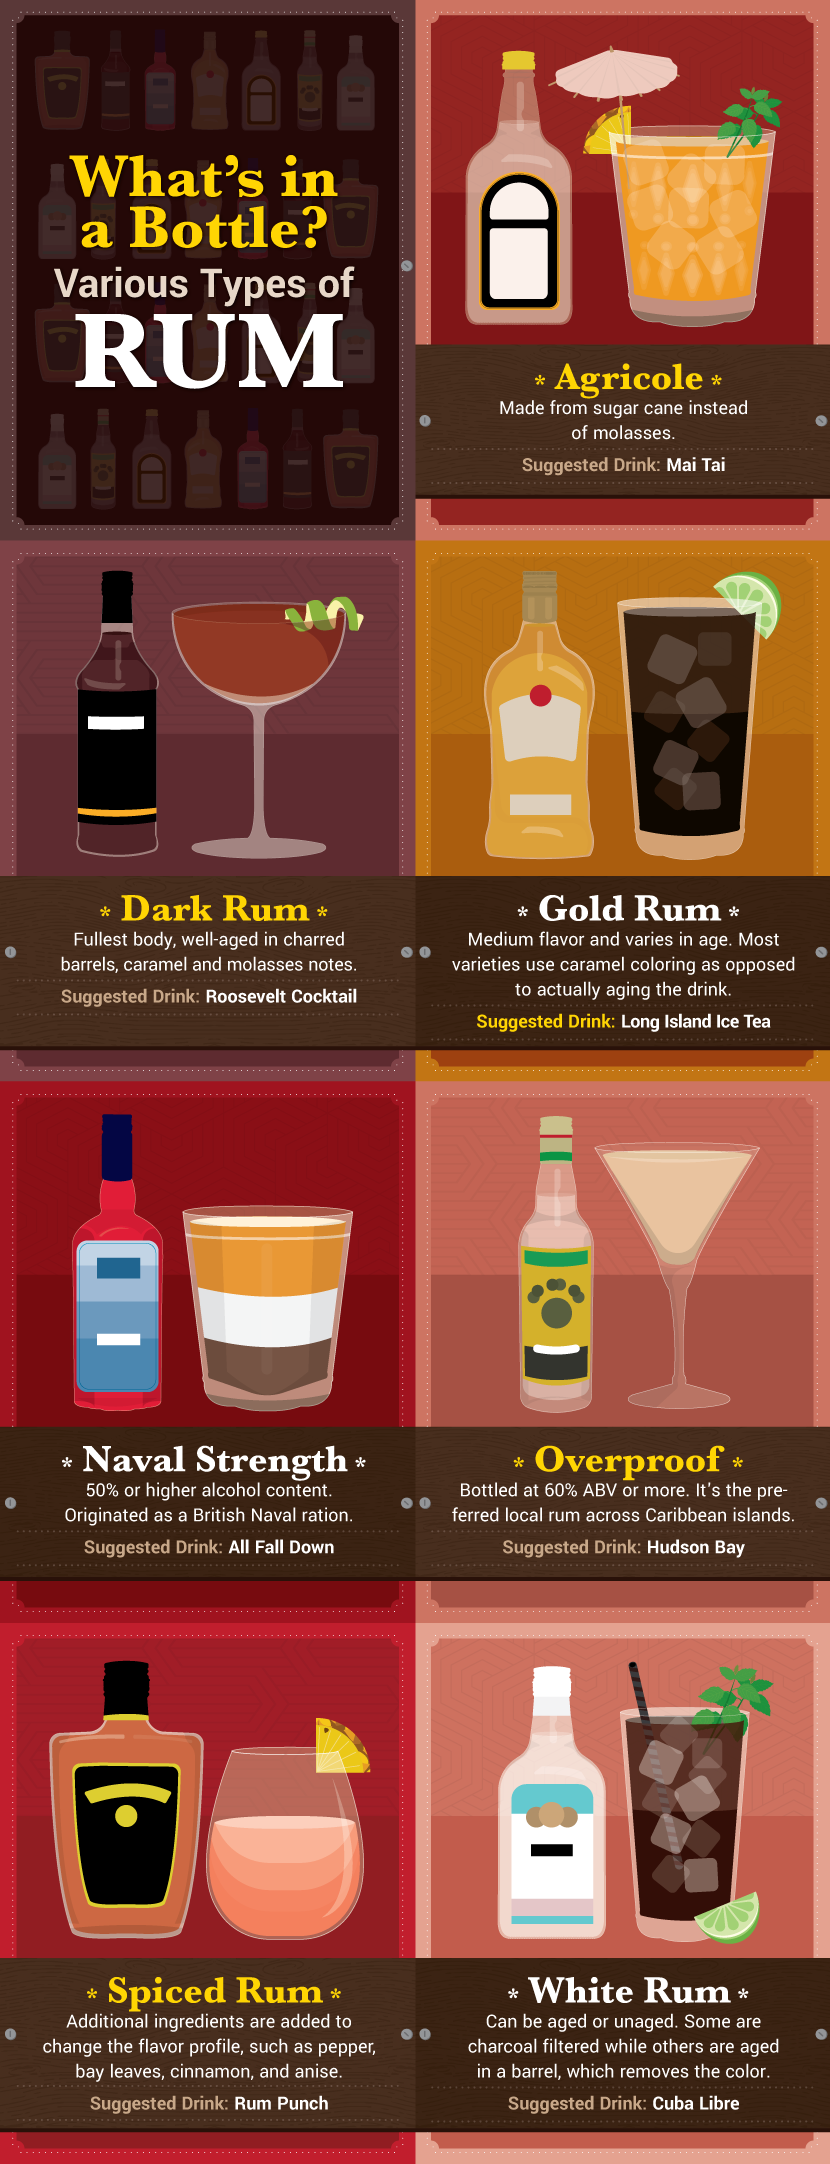 Rum Guide: What's in a Bottle